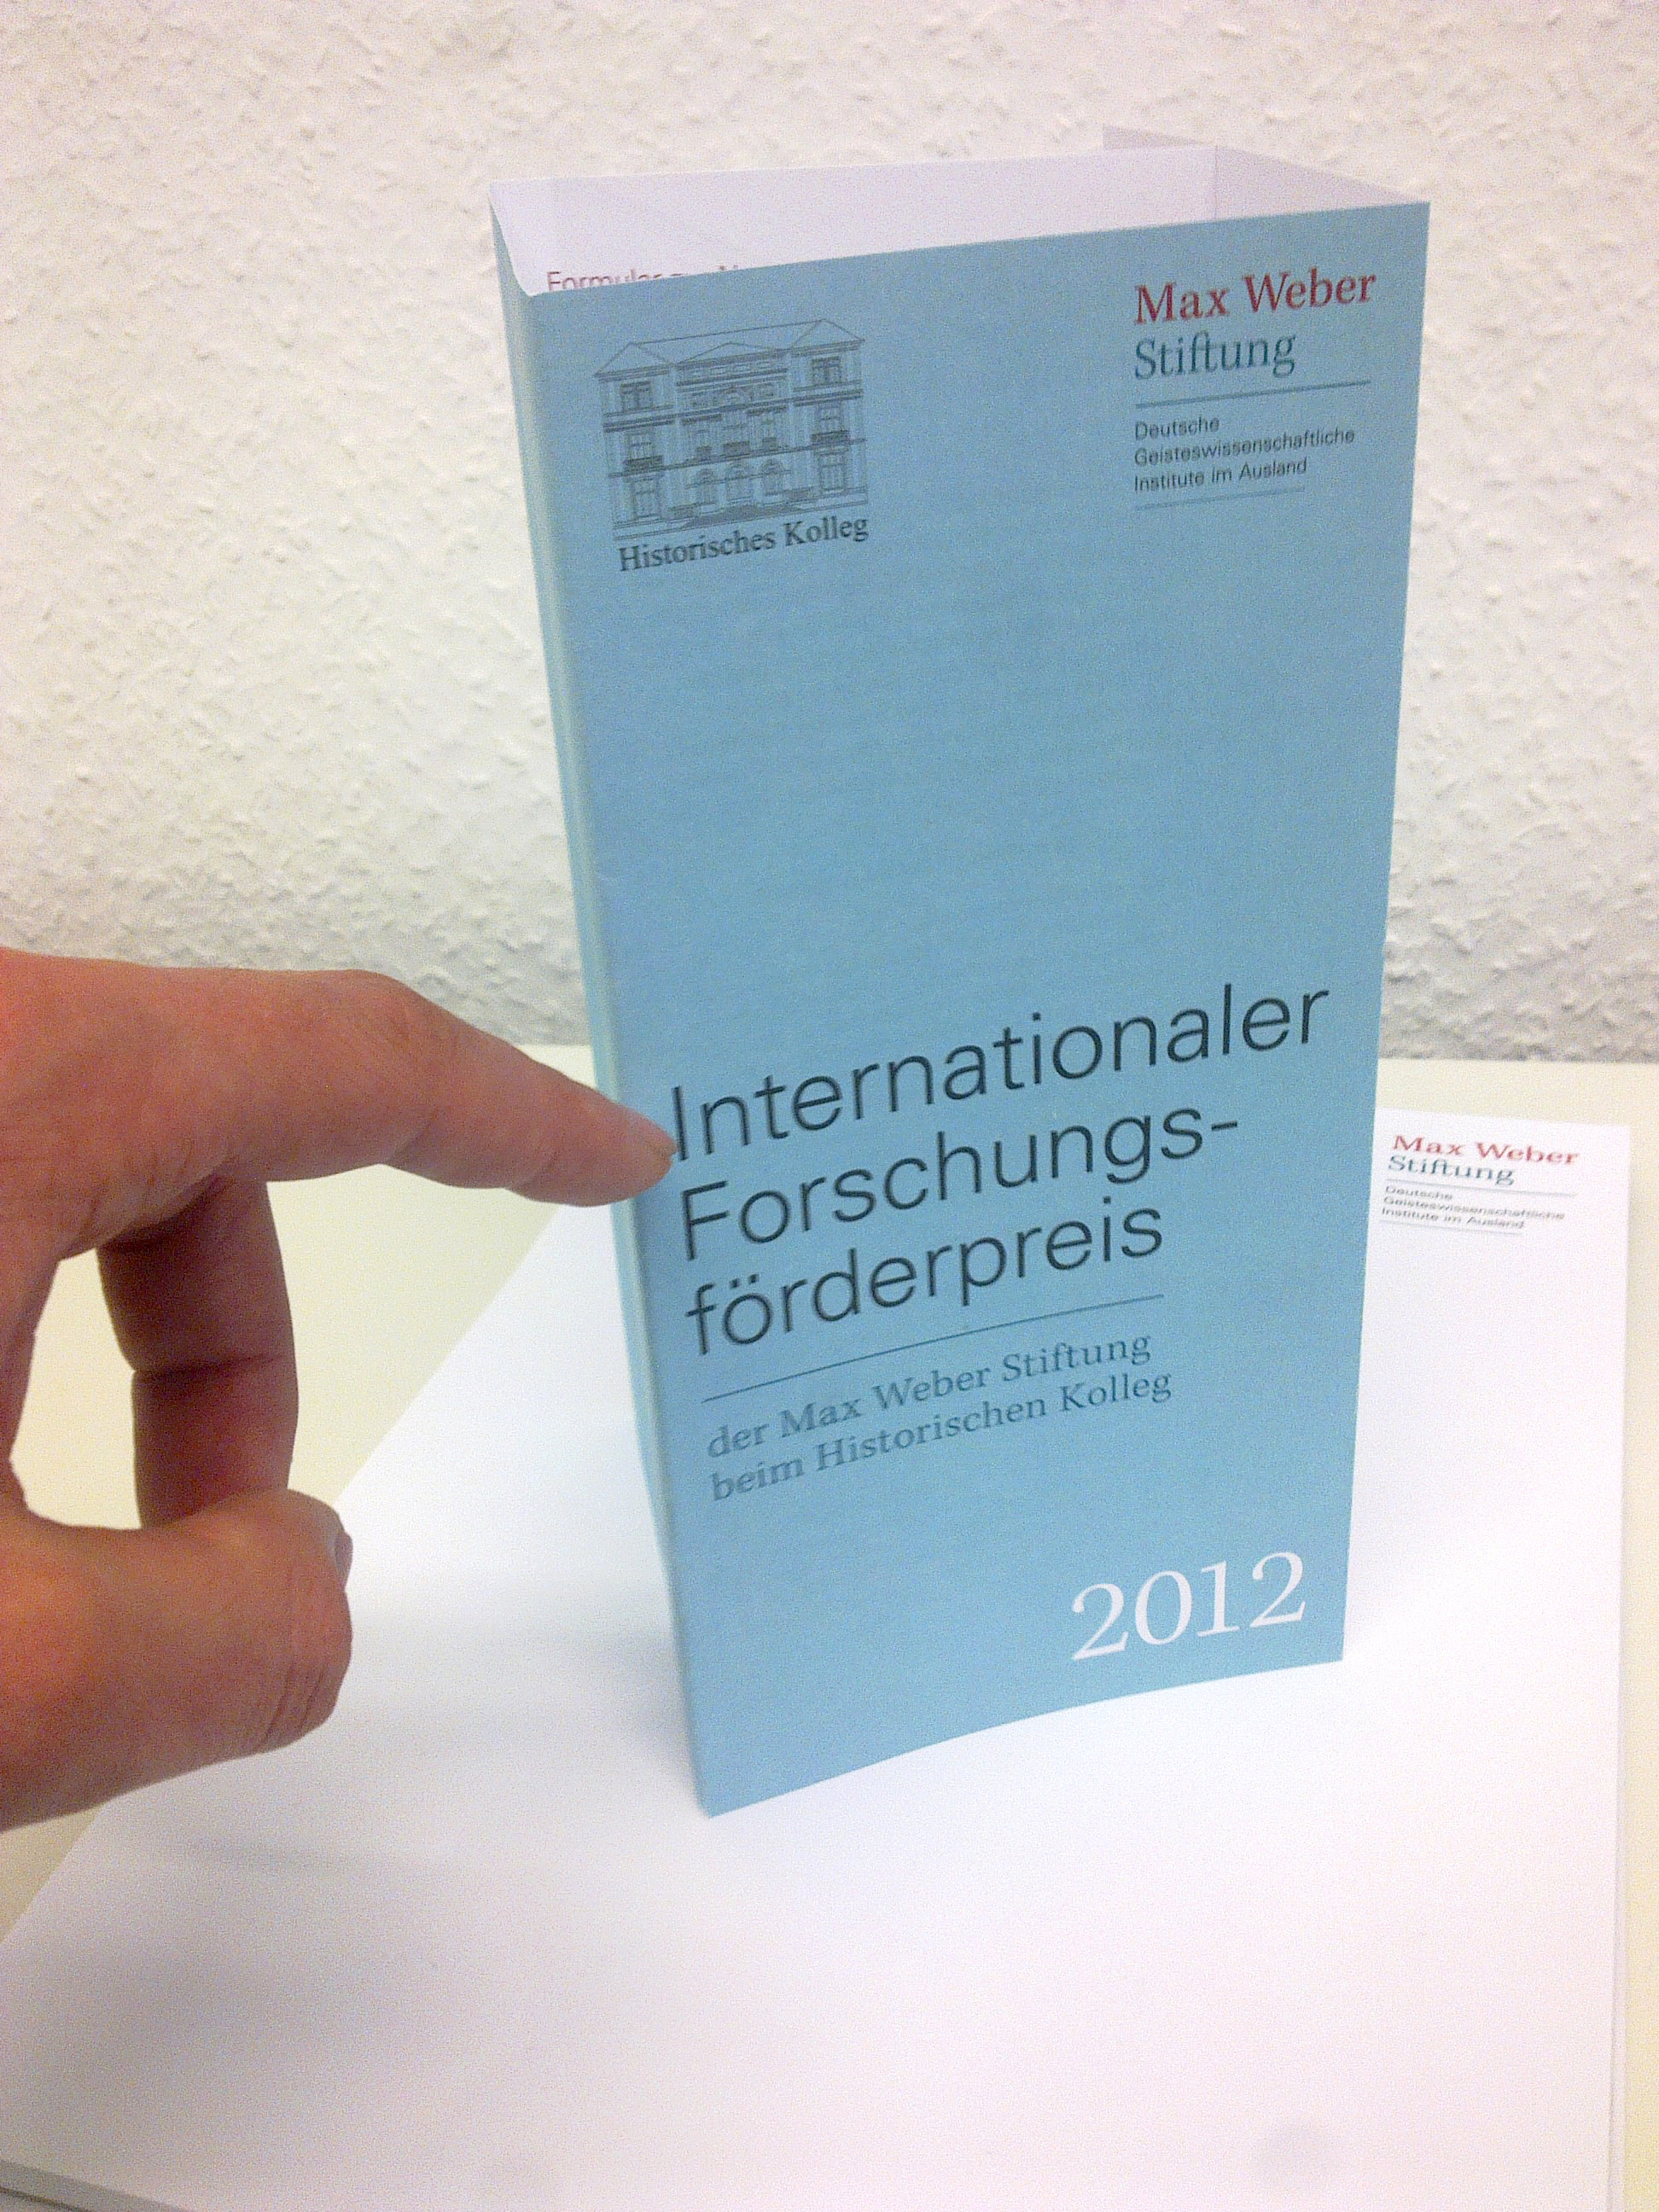 Internationaler Forschungsförderpreis